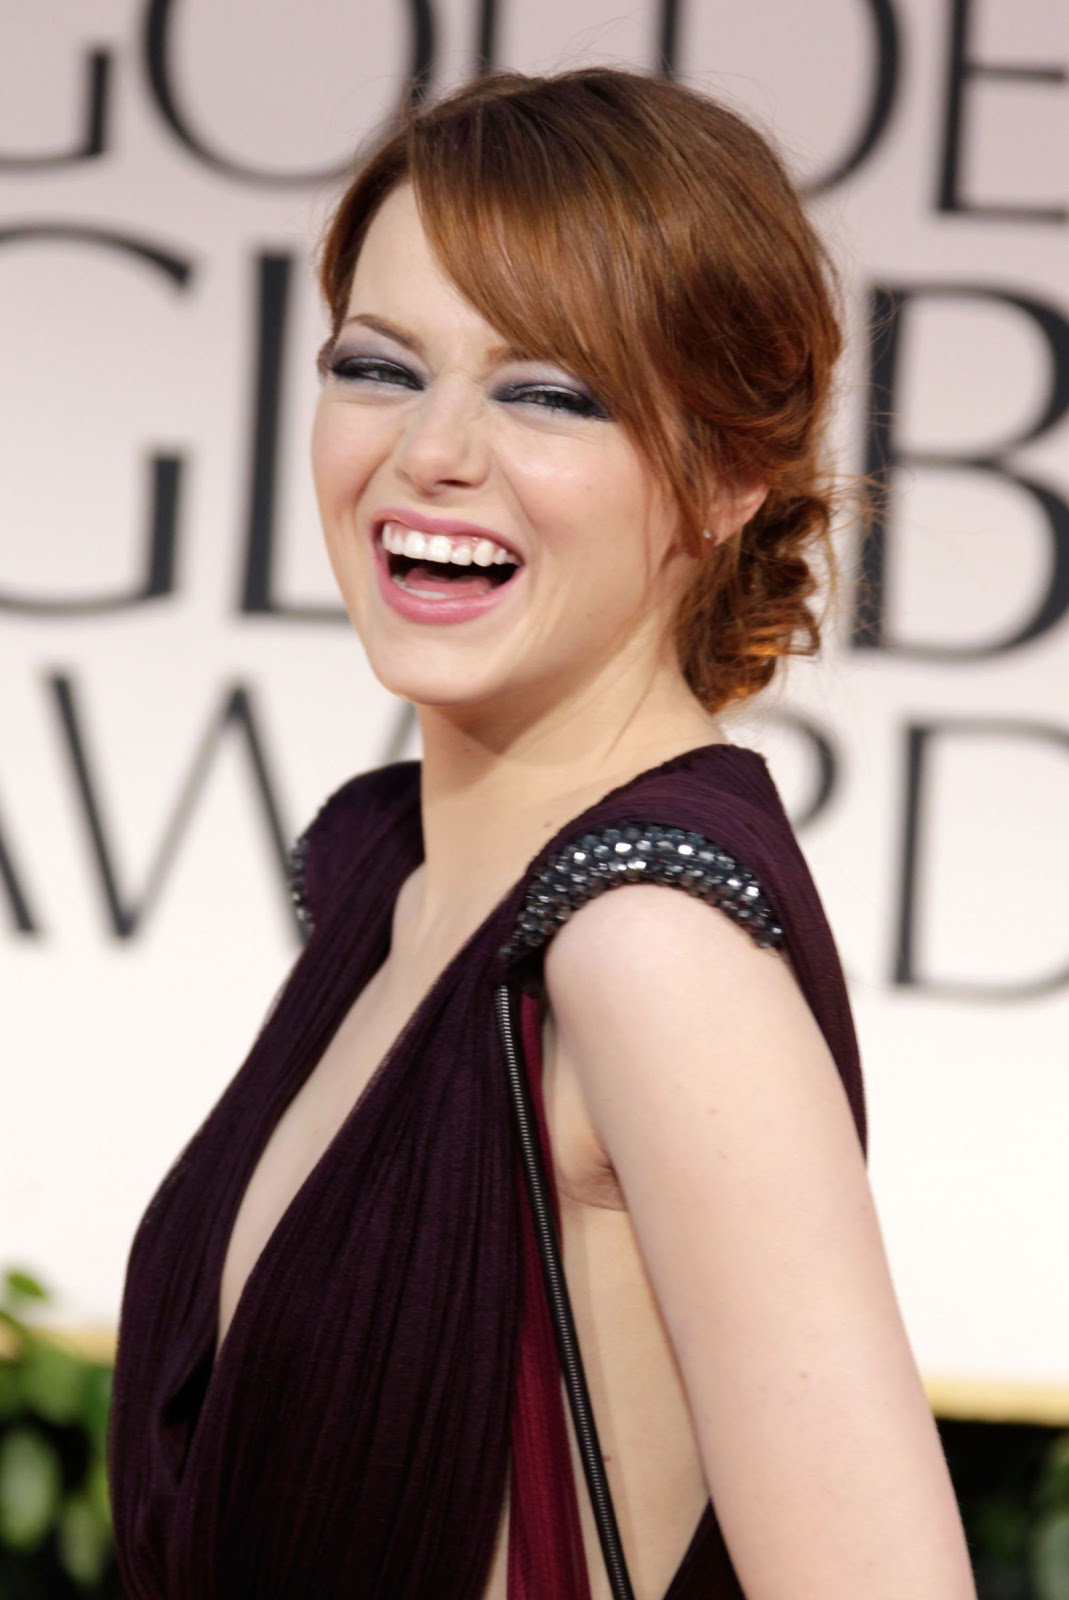 Emma stone iphone wallpaper tumblr - Sexy Emma Stone Iphone Wallpapers